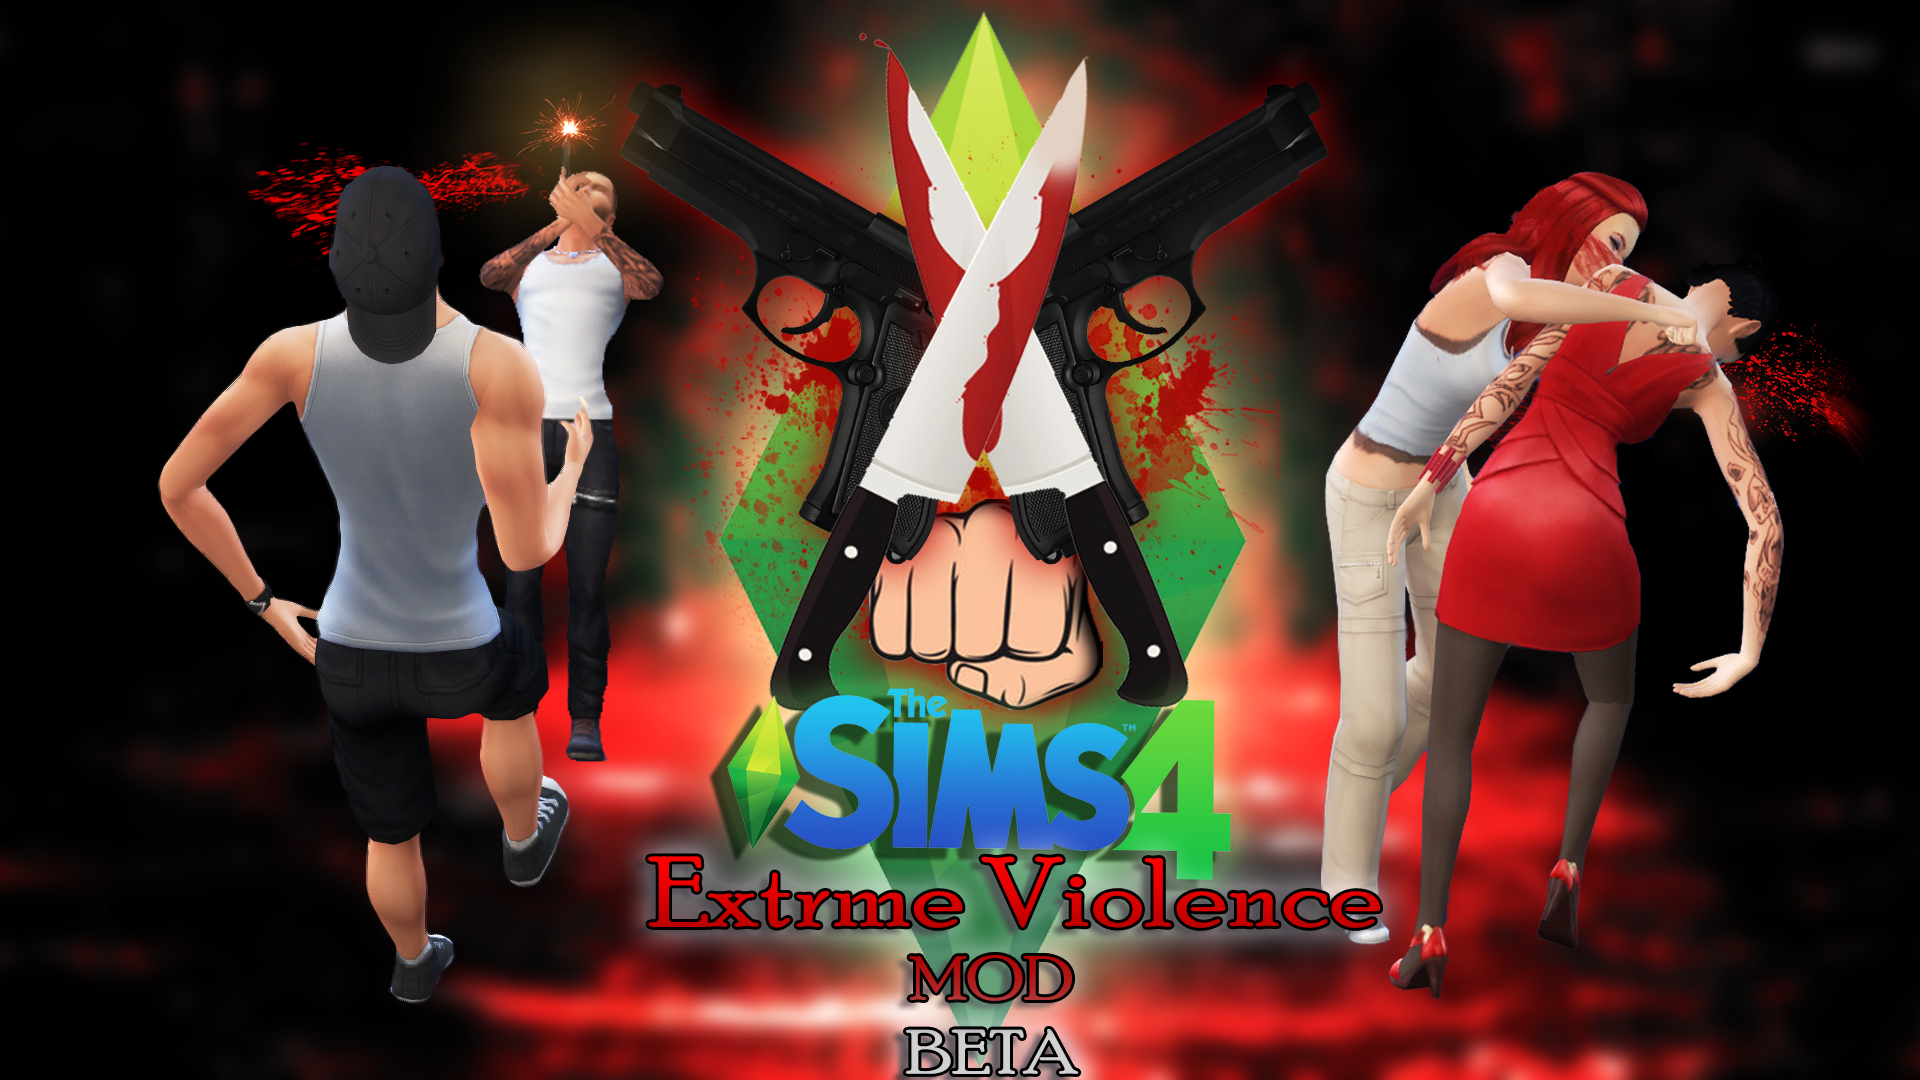 Extreme Violence mod for The Sims 4 - Mod DB